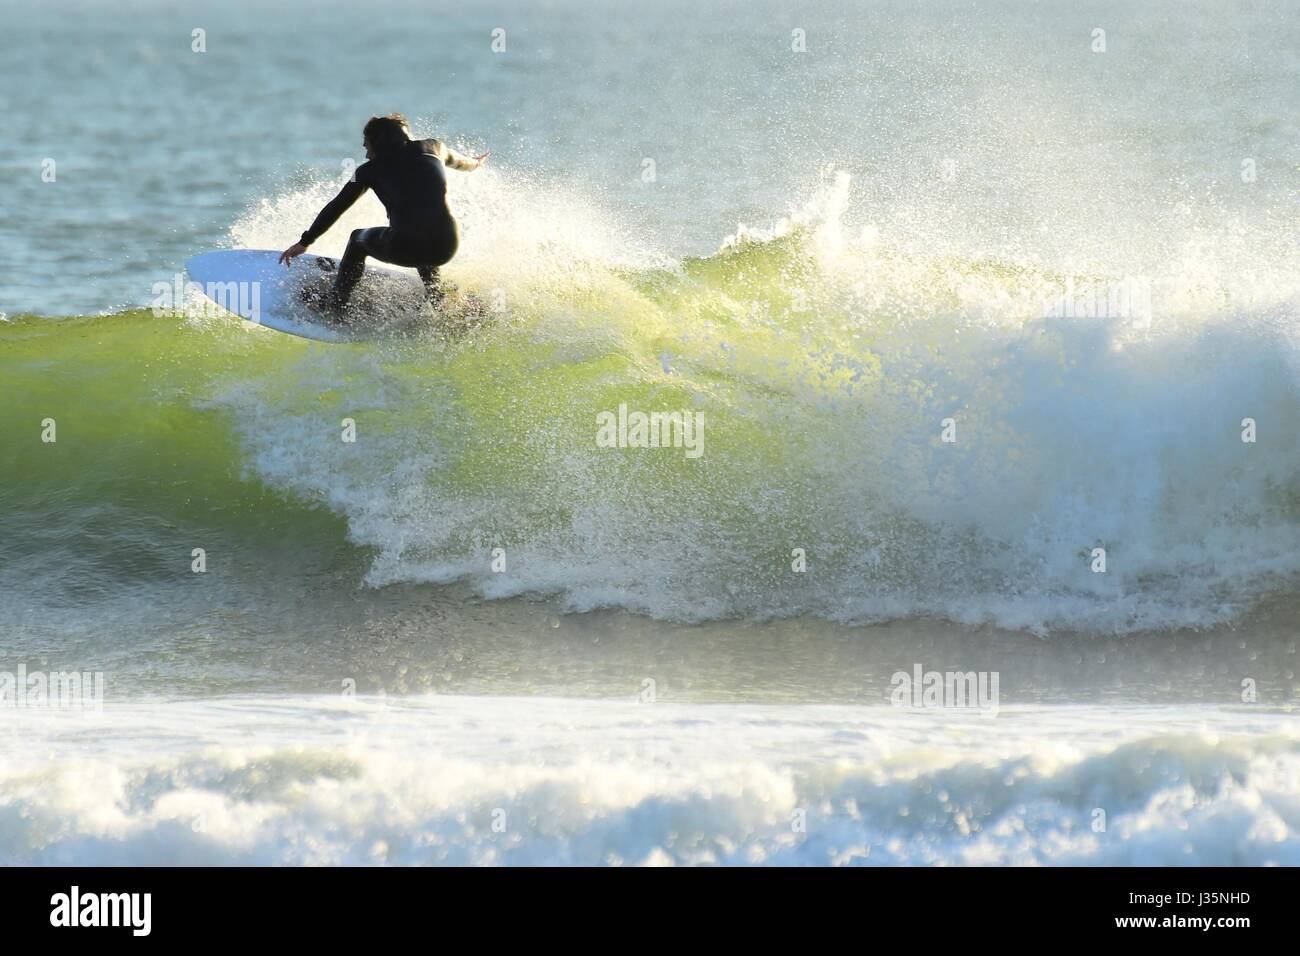 Aberystwyth Wales UK, Wednesday 02 May UK UK Weather: surfers enjoying riding some fine waves off the beach at Aberystwyth - Stock Image